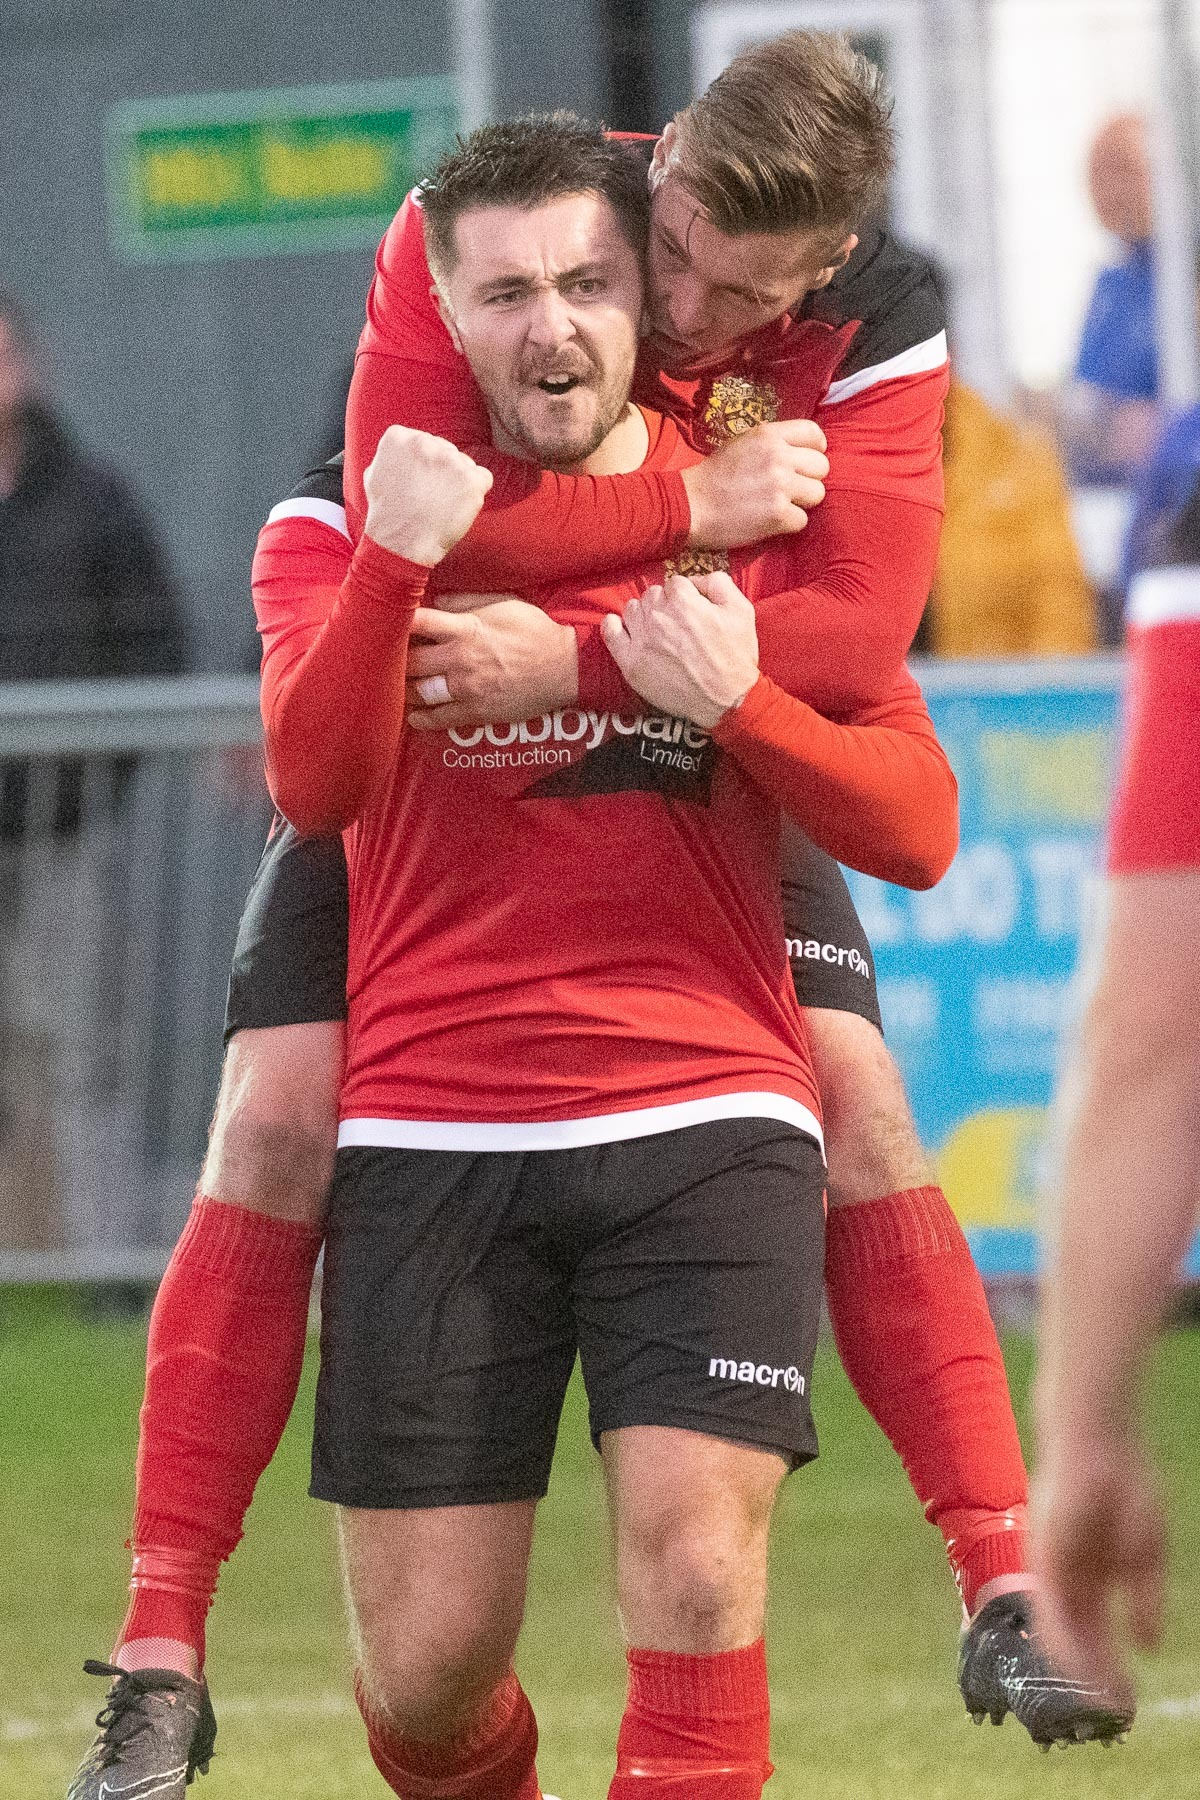 Joe Gaughan celebrates his goal with Aidan Kirby for Silsden in their 3-1 FA Vase second round win over Bedlington Terriers. Picture: David Brett